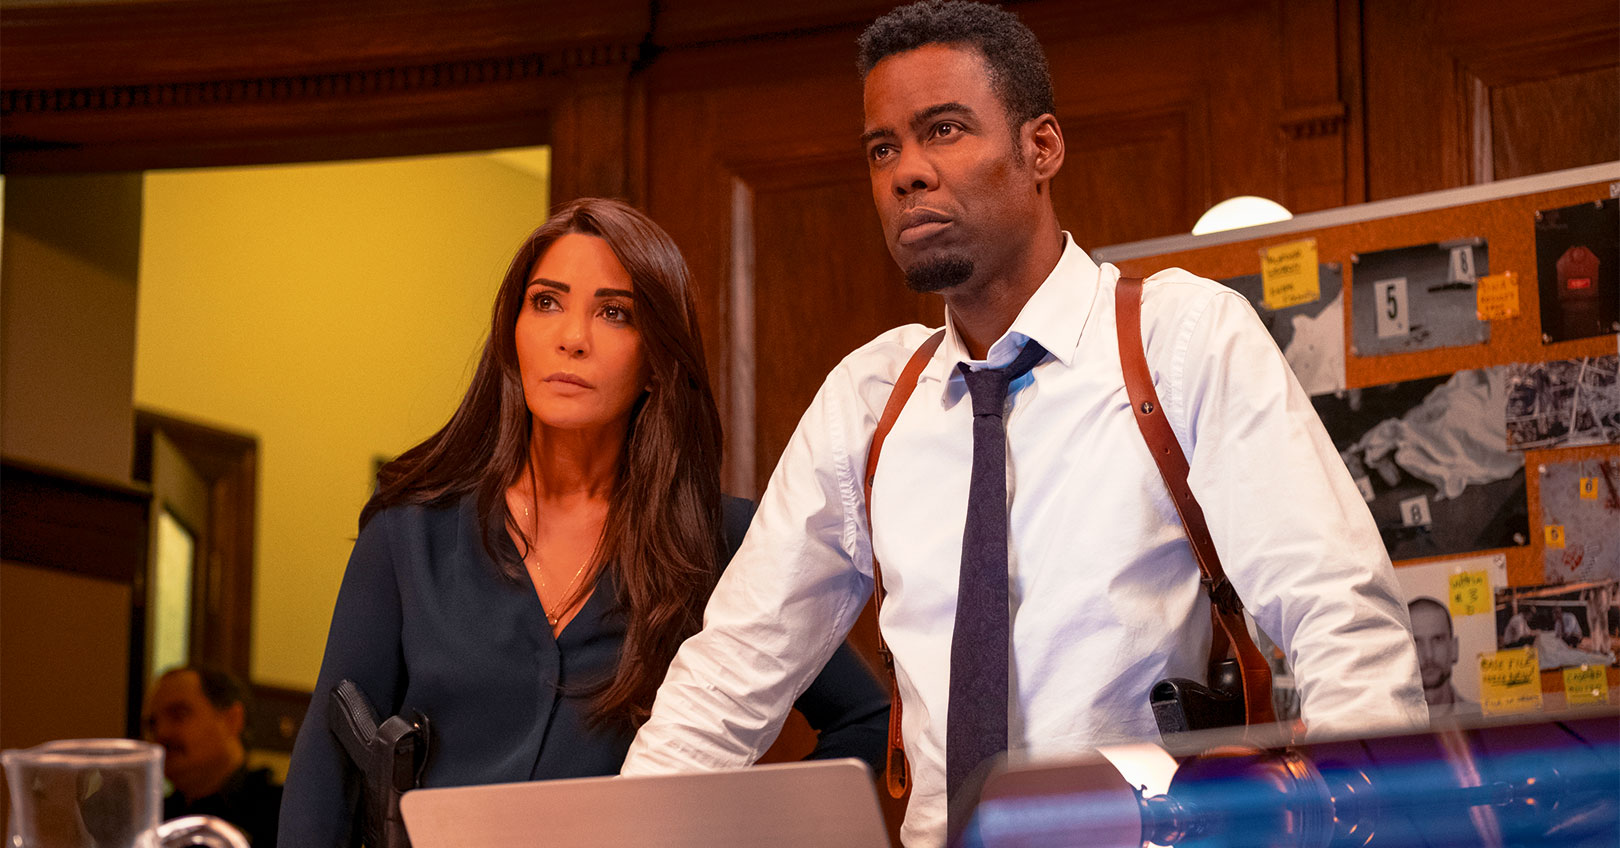 Spiral: From the Book of Saw - Marisol Nichols and Chris Rock